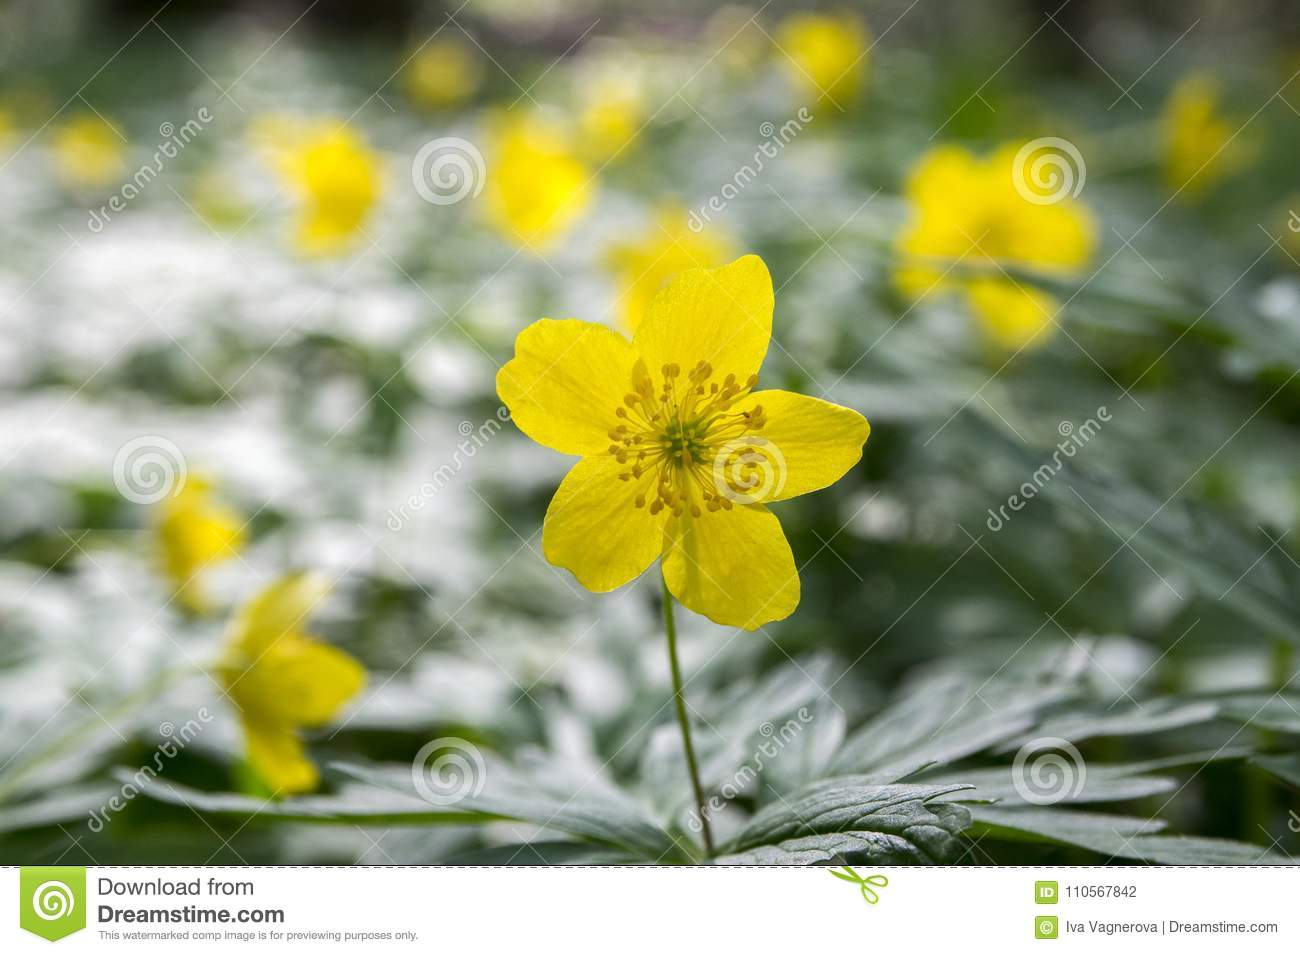 Anemone Ranunculoides Spring Yellow Flowers In Bloom Stock Photo